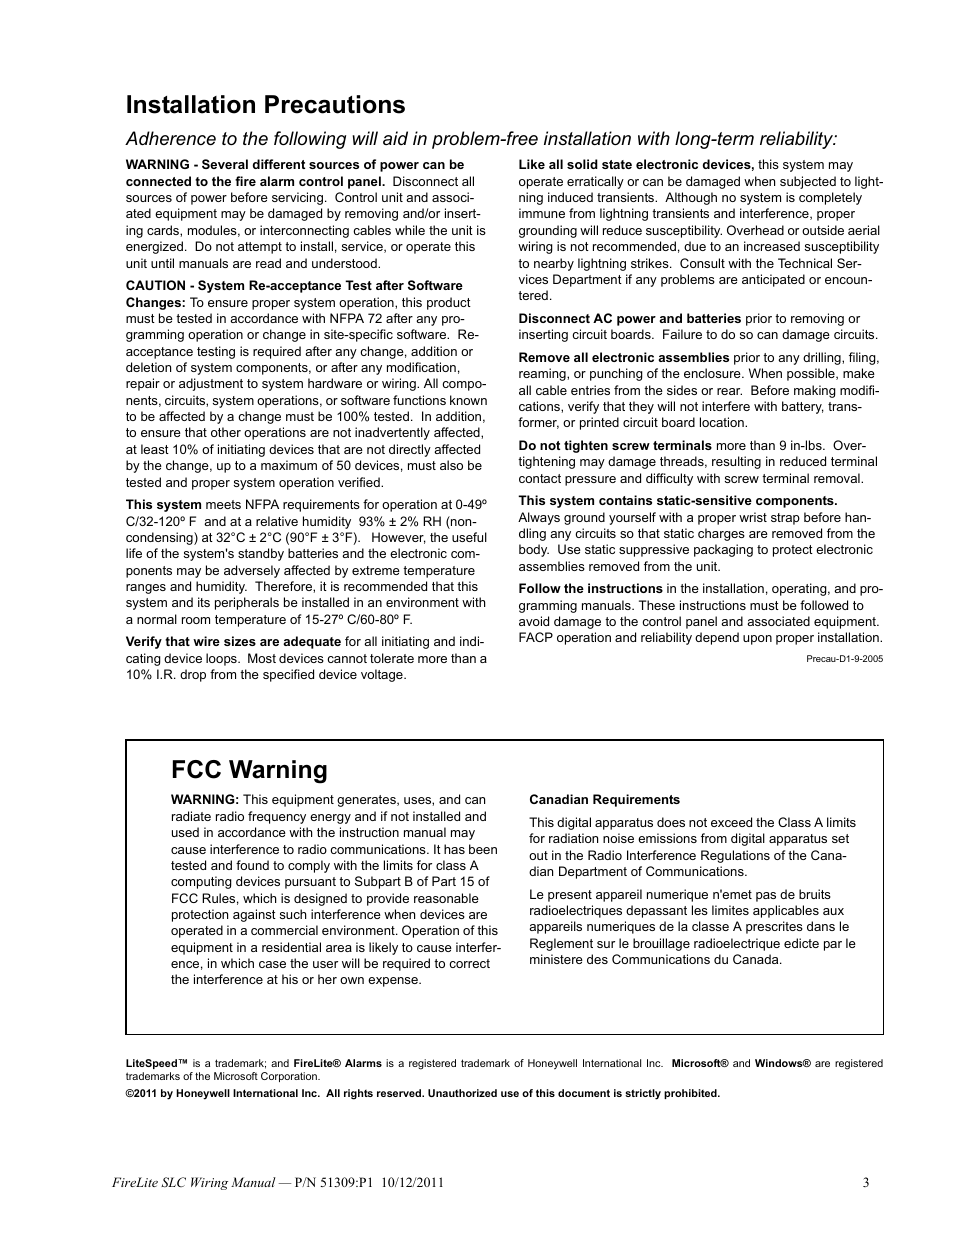 Installation Precautions  Fcc Warning